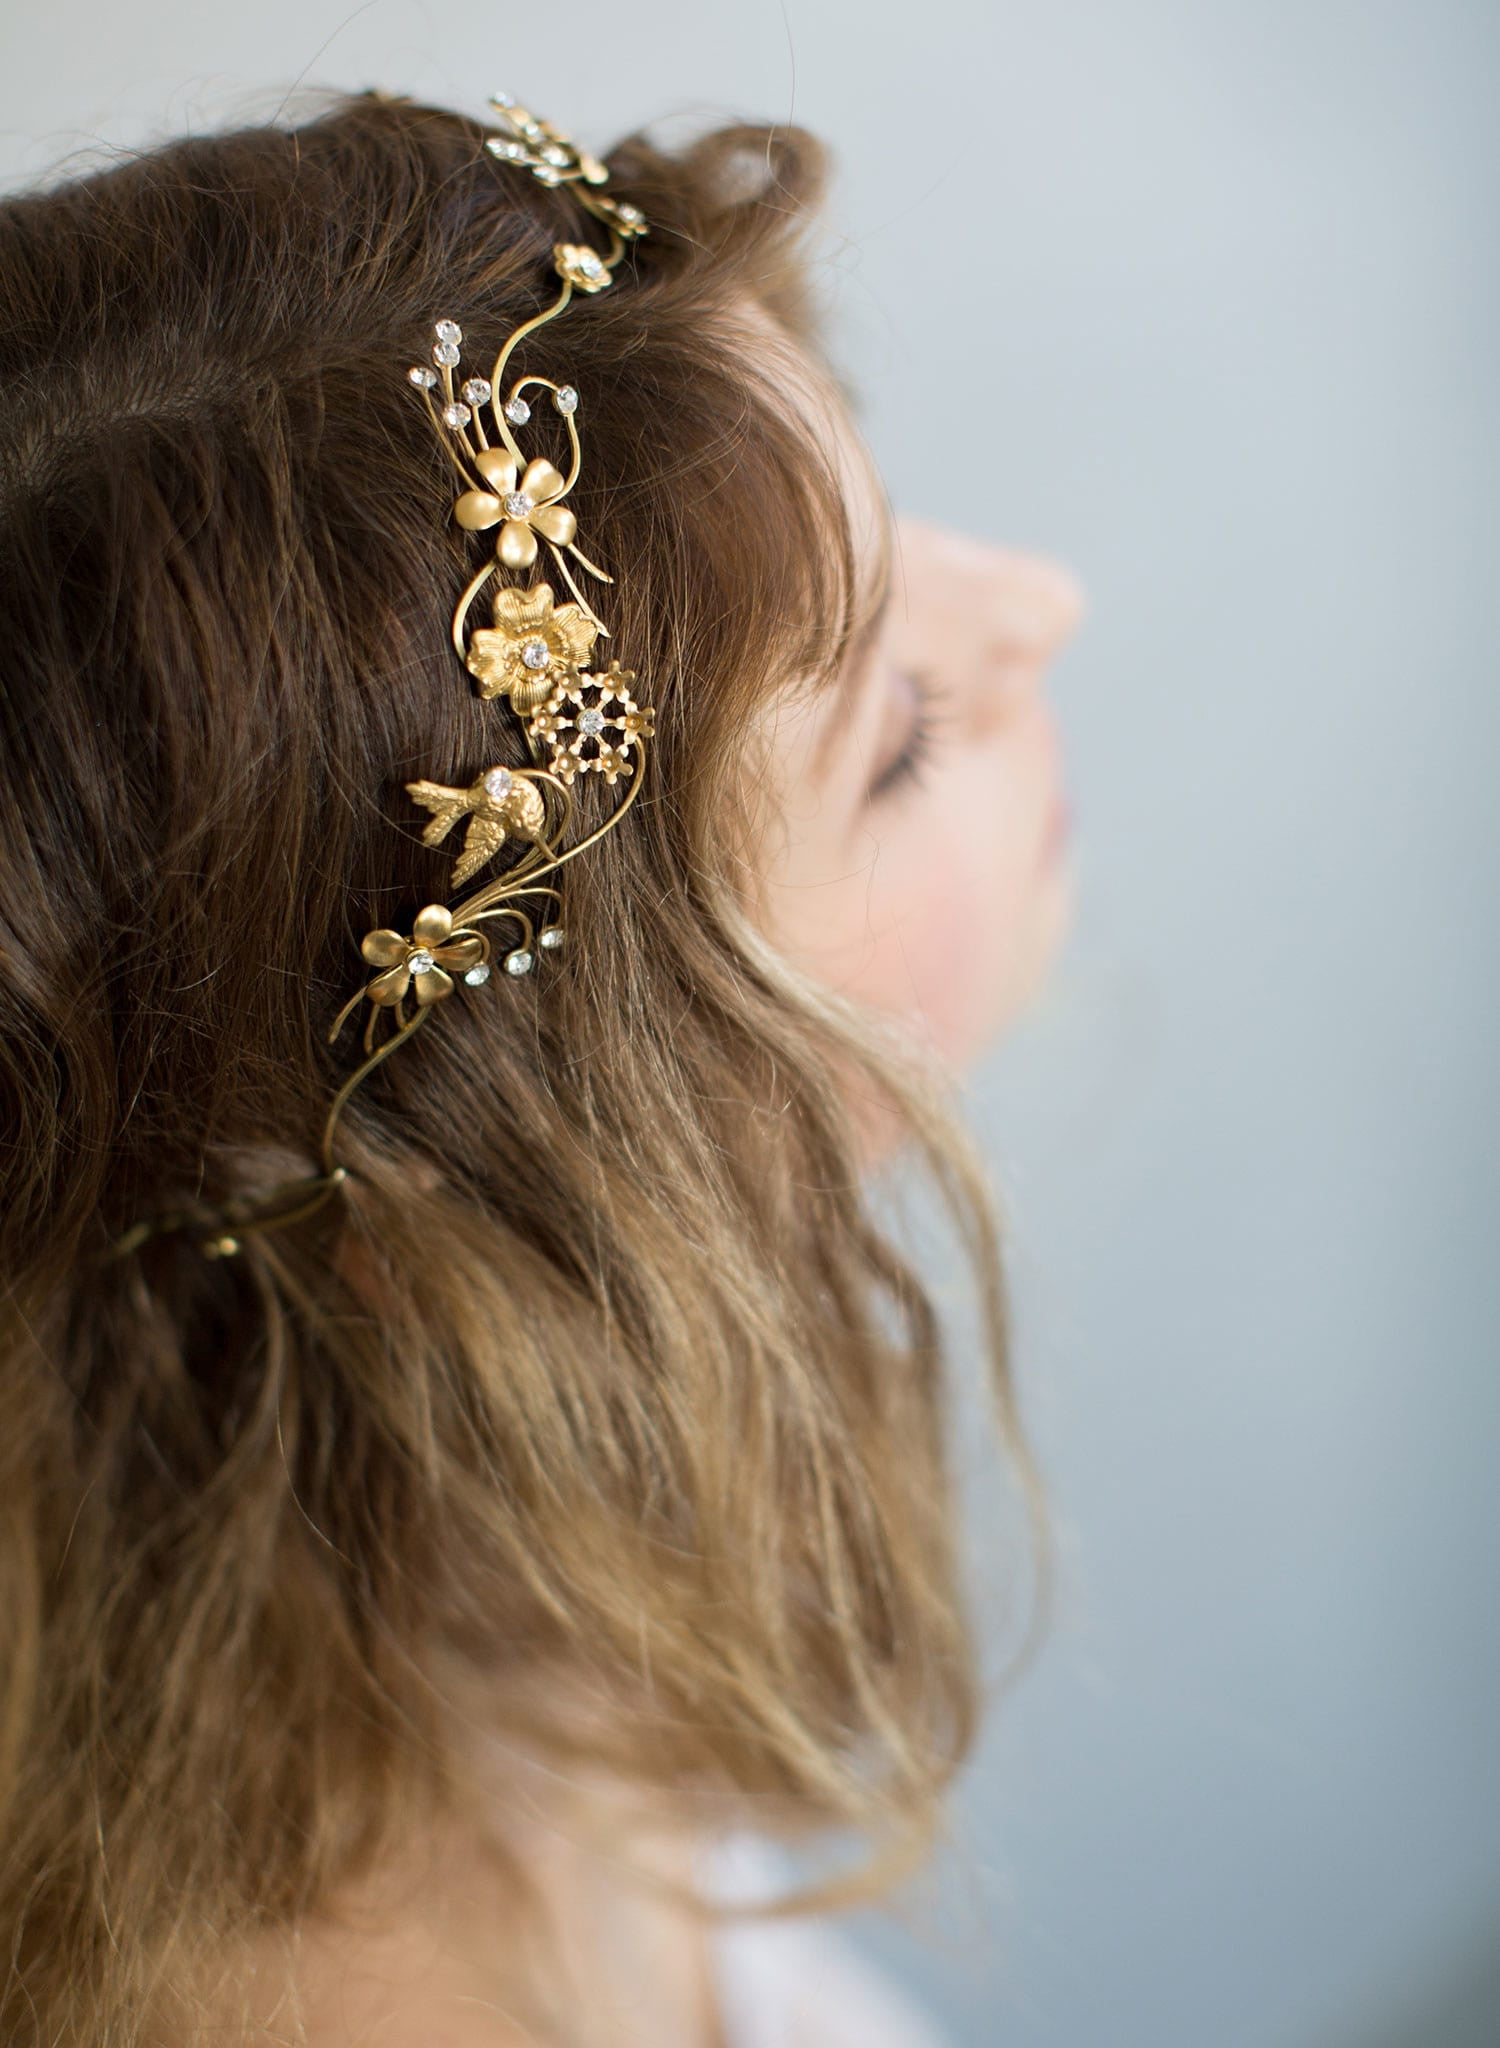 Br Bridal Headpieces Twigs And Honey -  floral brass headband bridal headpiece nature inspired wedding headpiece twigs and honey